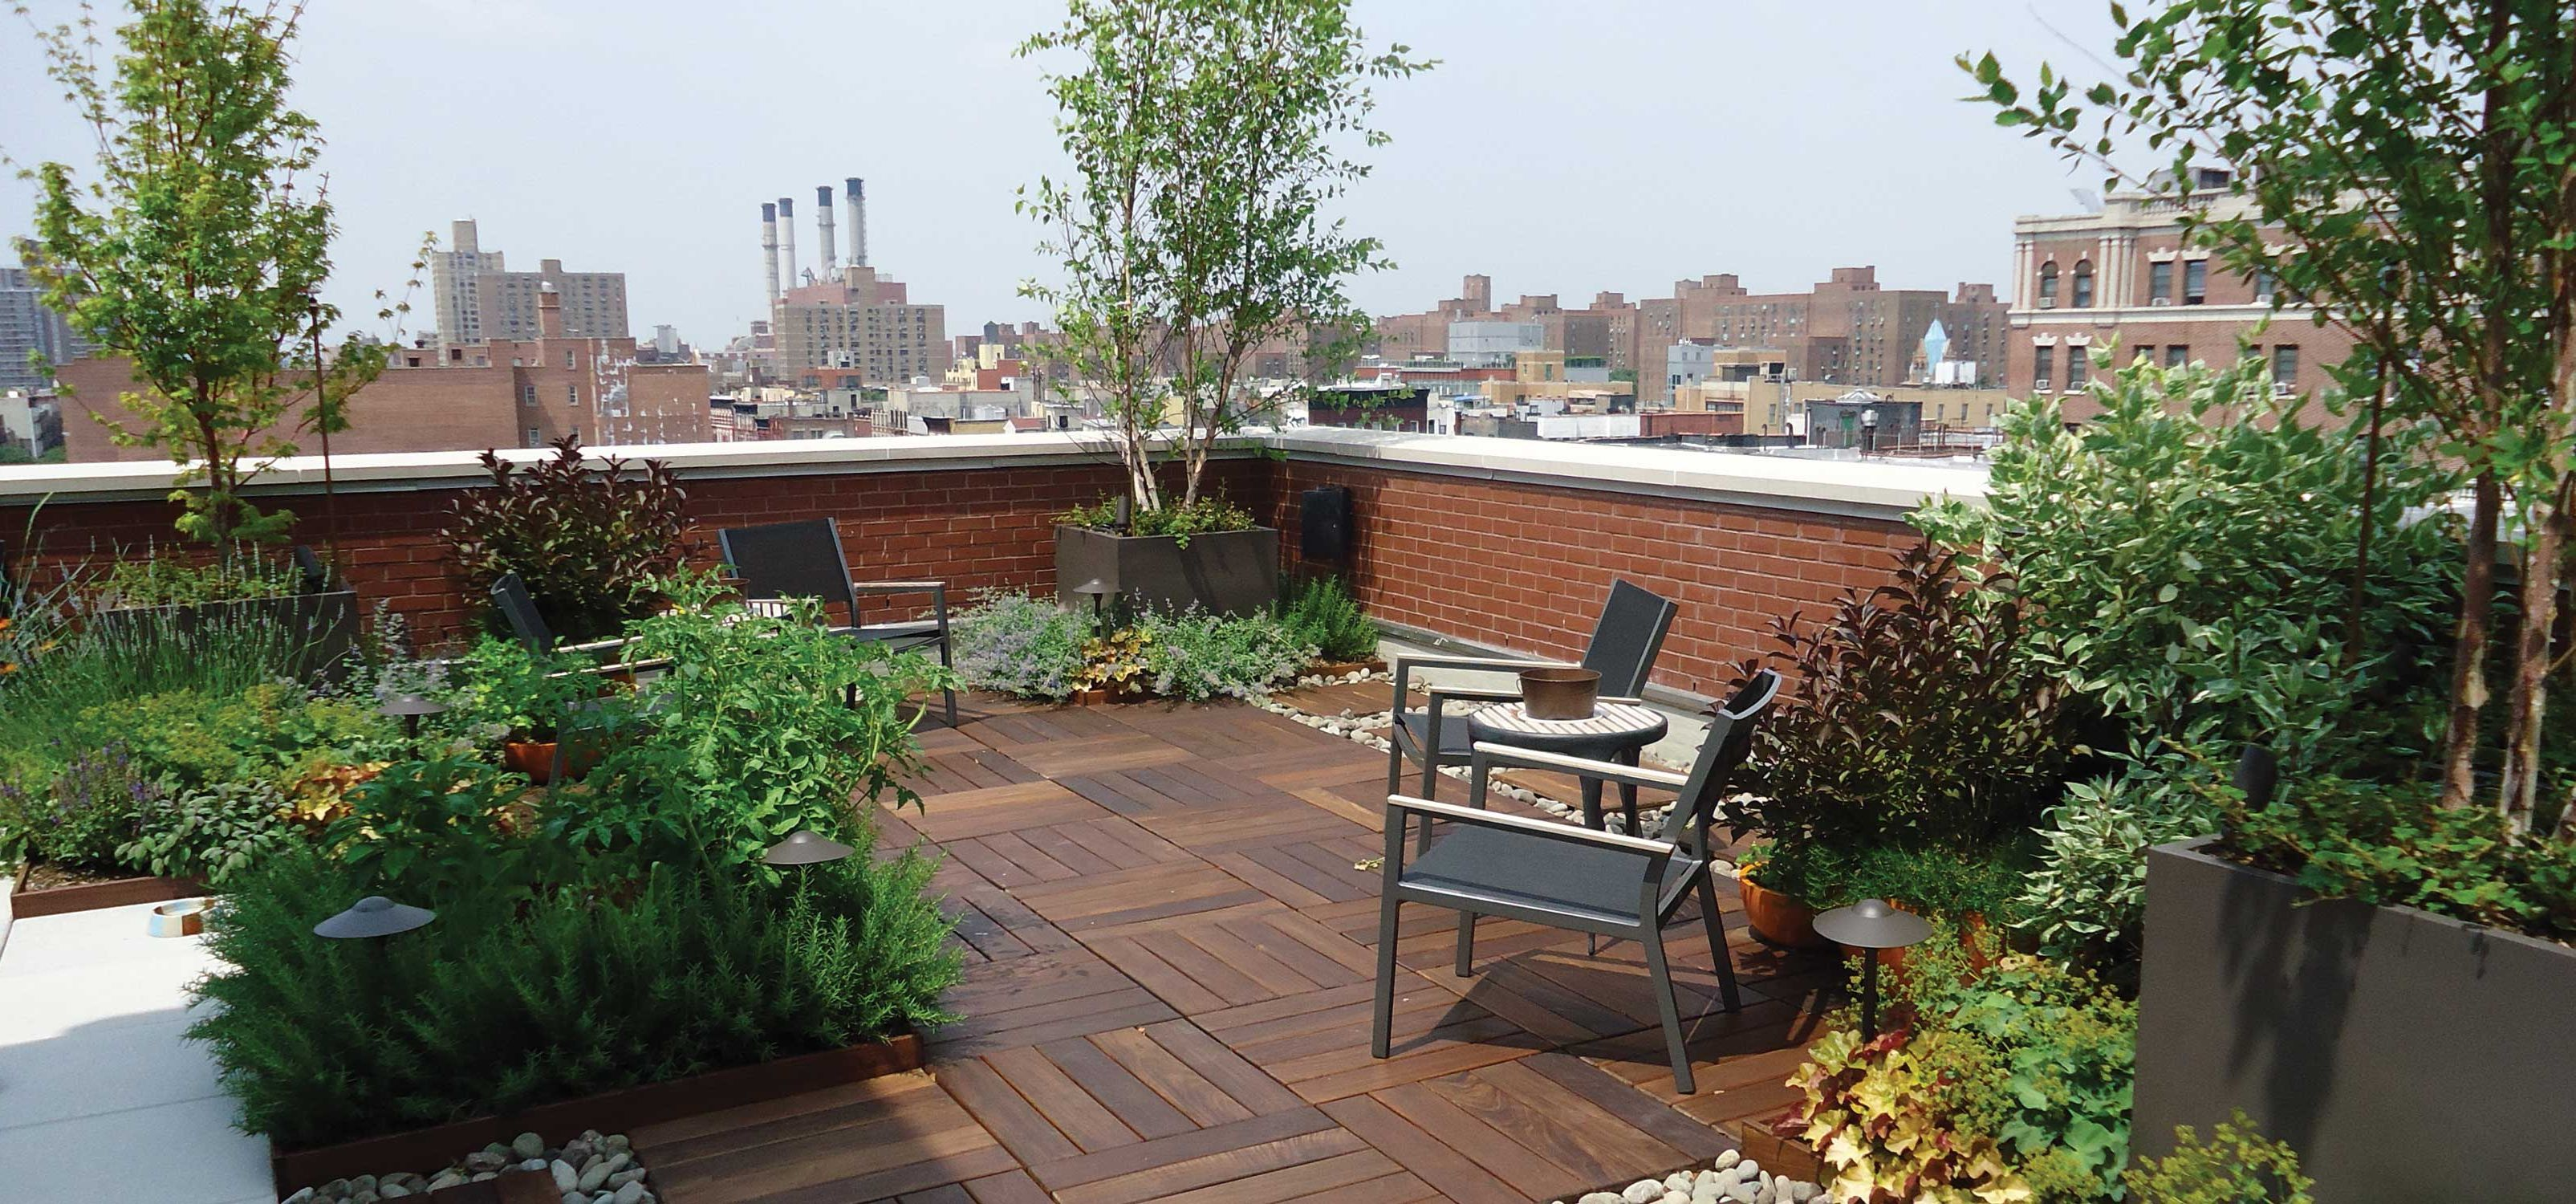 Outdoor beautiful cozy terrace garden picture for House roof garden design